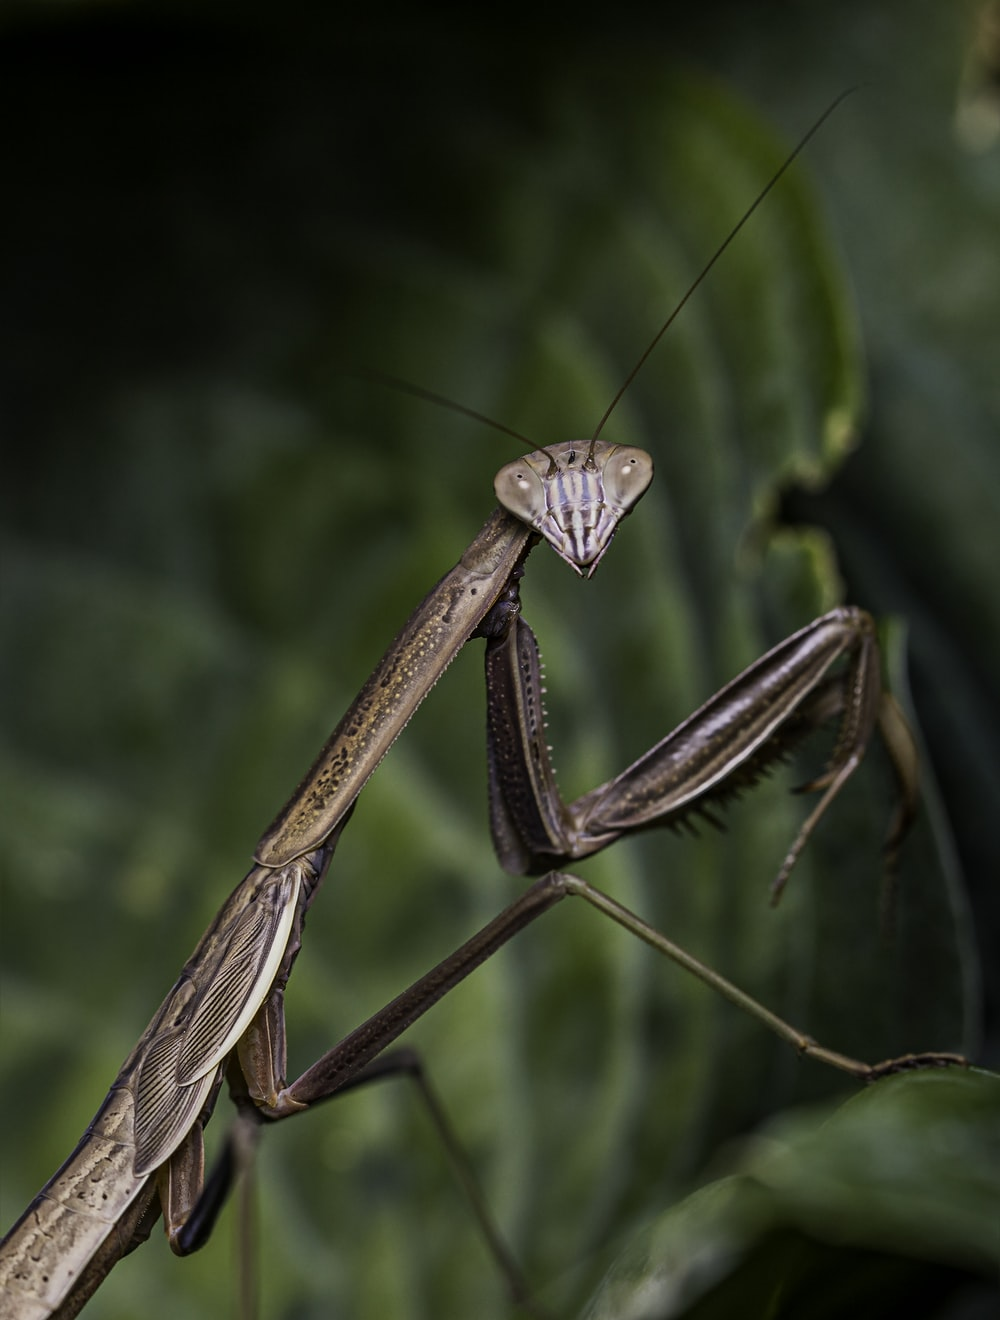 brown praying mantis on green leaf in close up photography during daytime